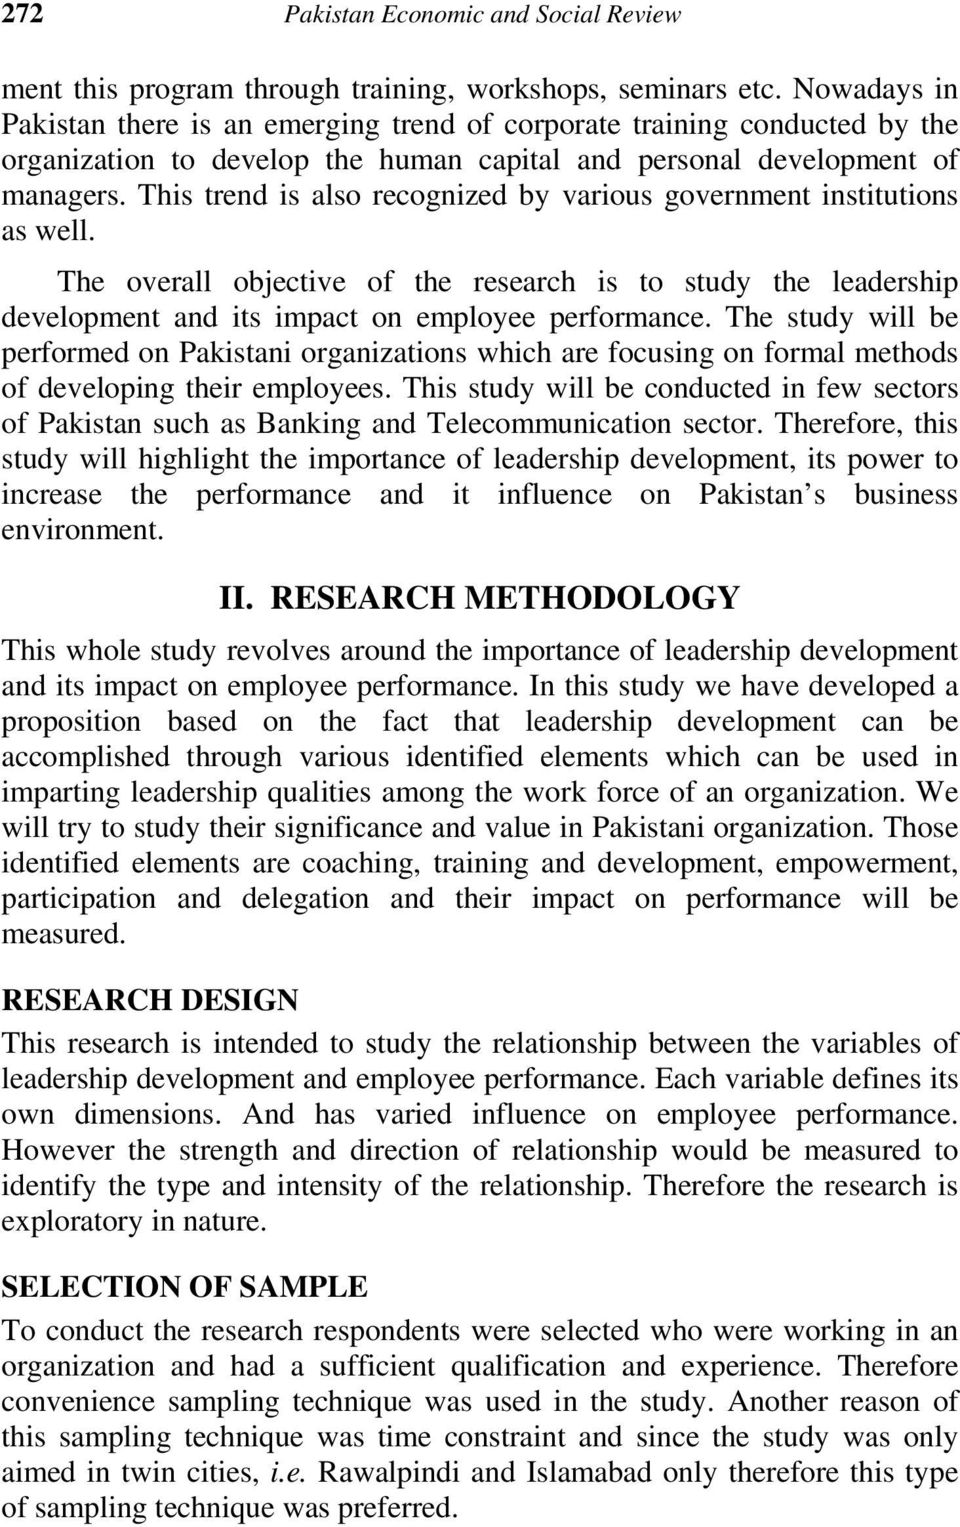 This trend is also recognized by various government institutions as well. The overall objective of the research is to study the leadership development and its impact on employee performance.